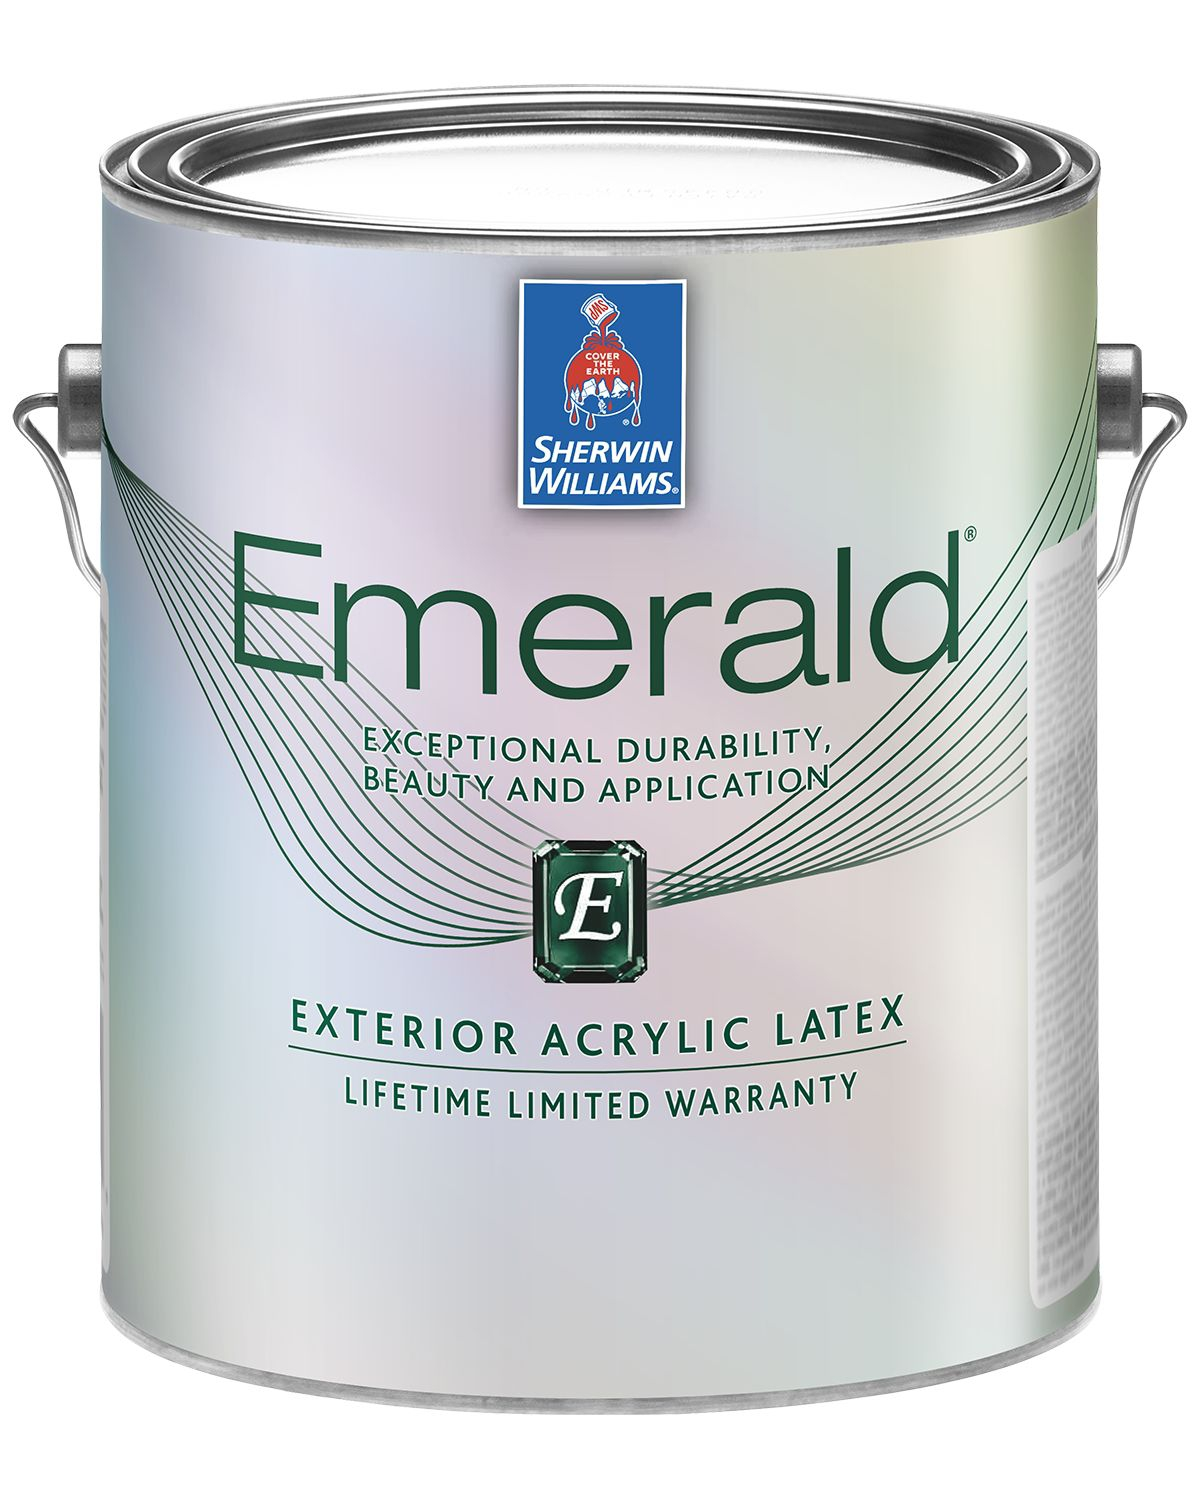 Emerald Exterior Acrylic Latex Paint By Sherwin Williams Elite Home Exteriors Nw